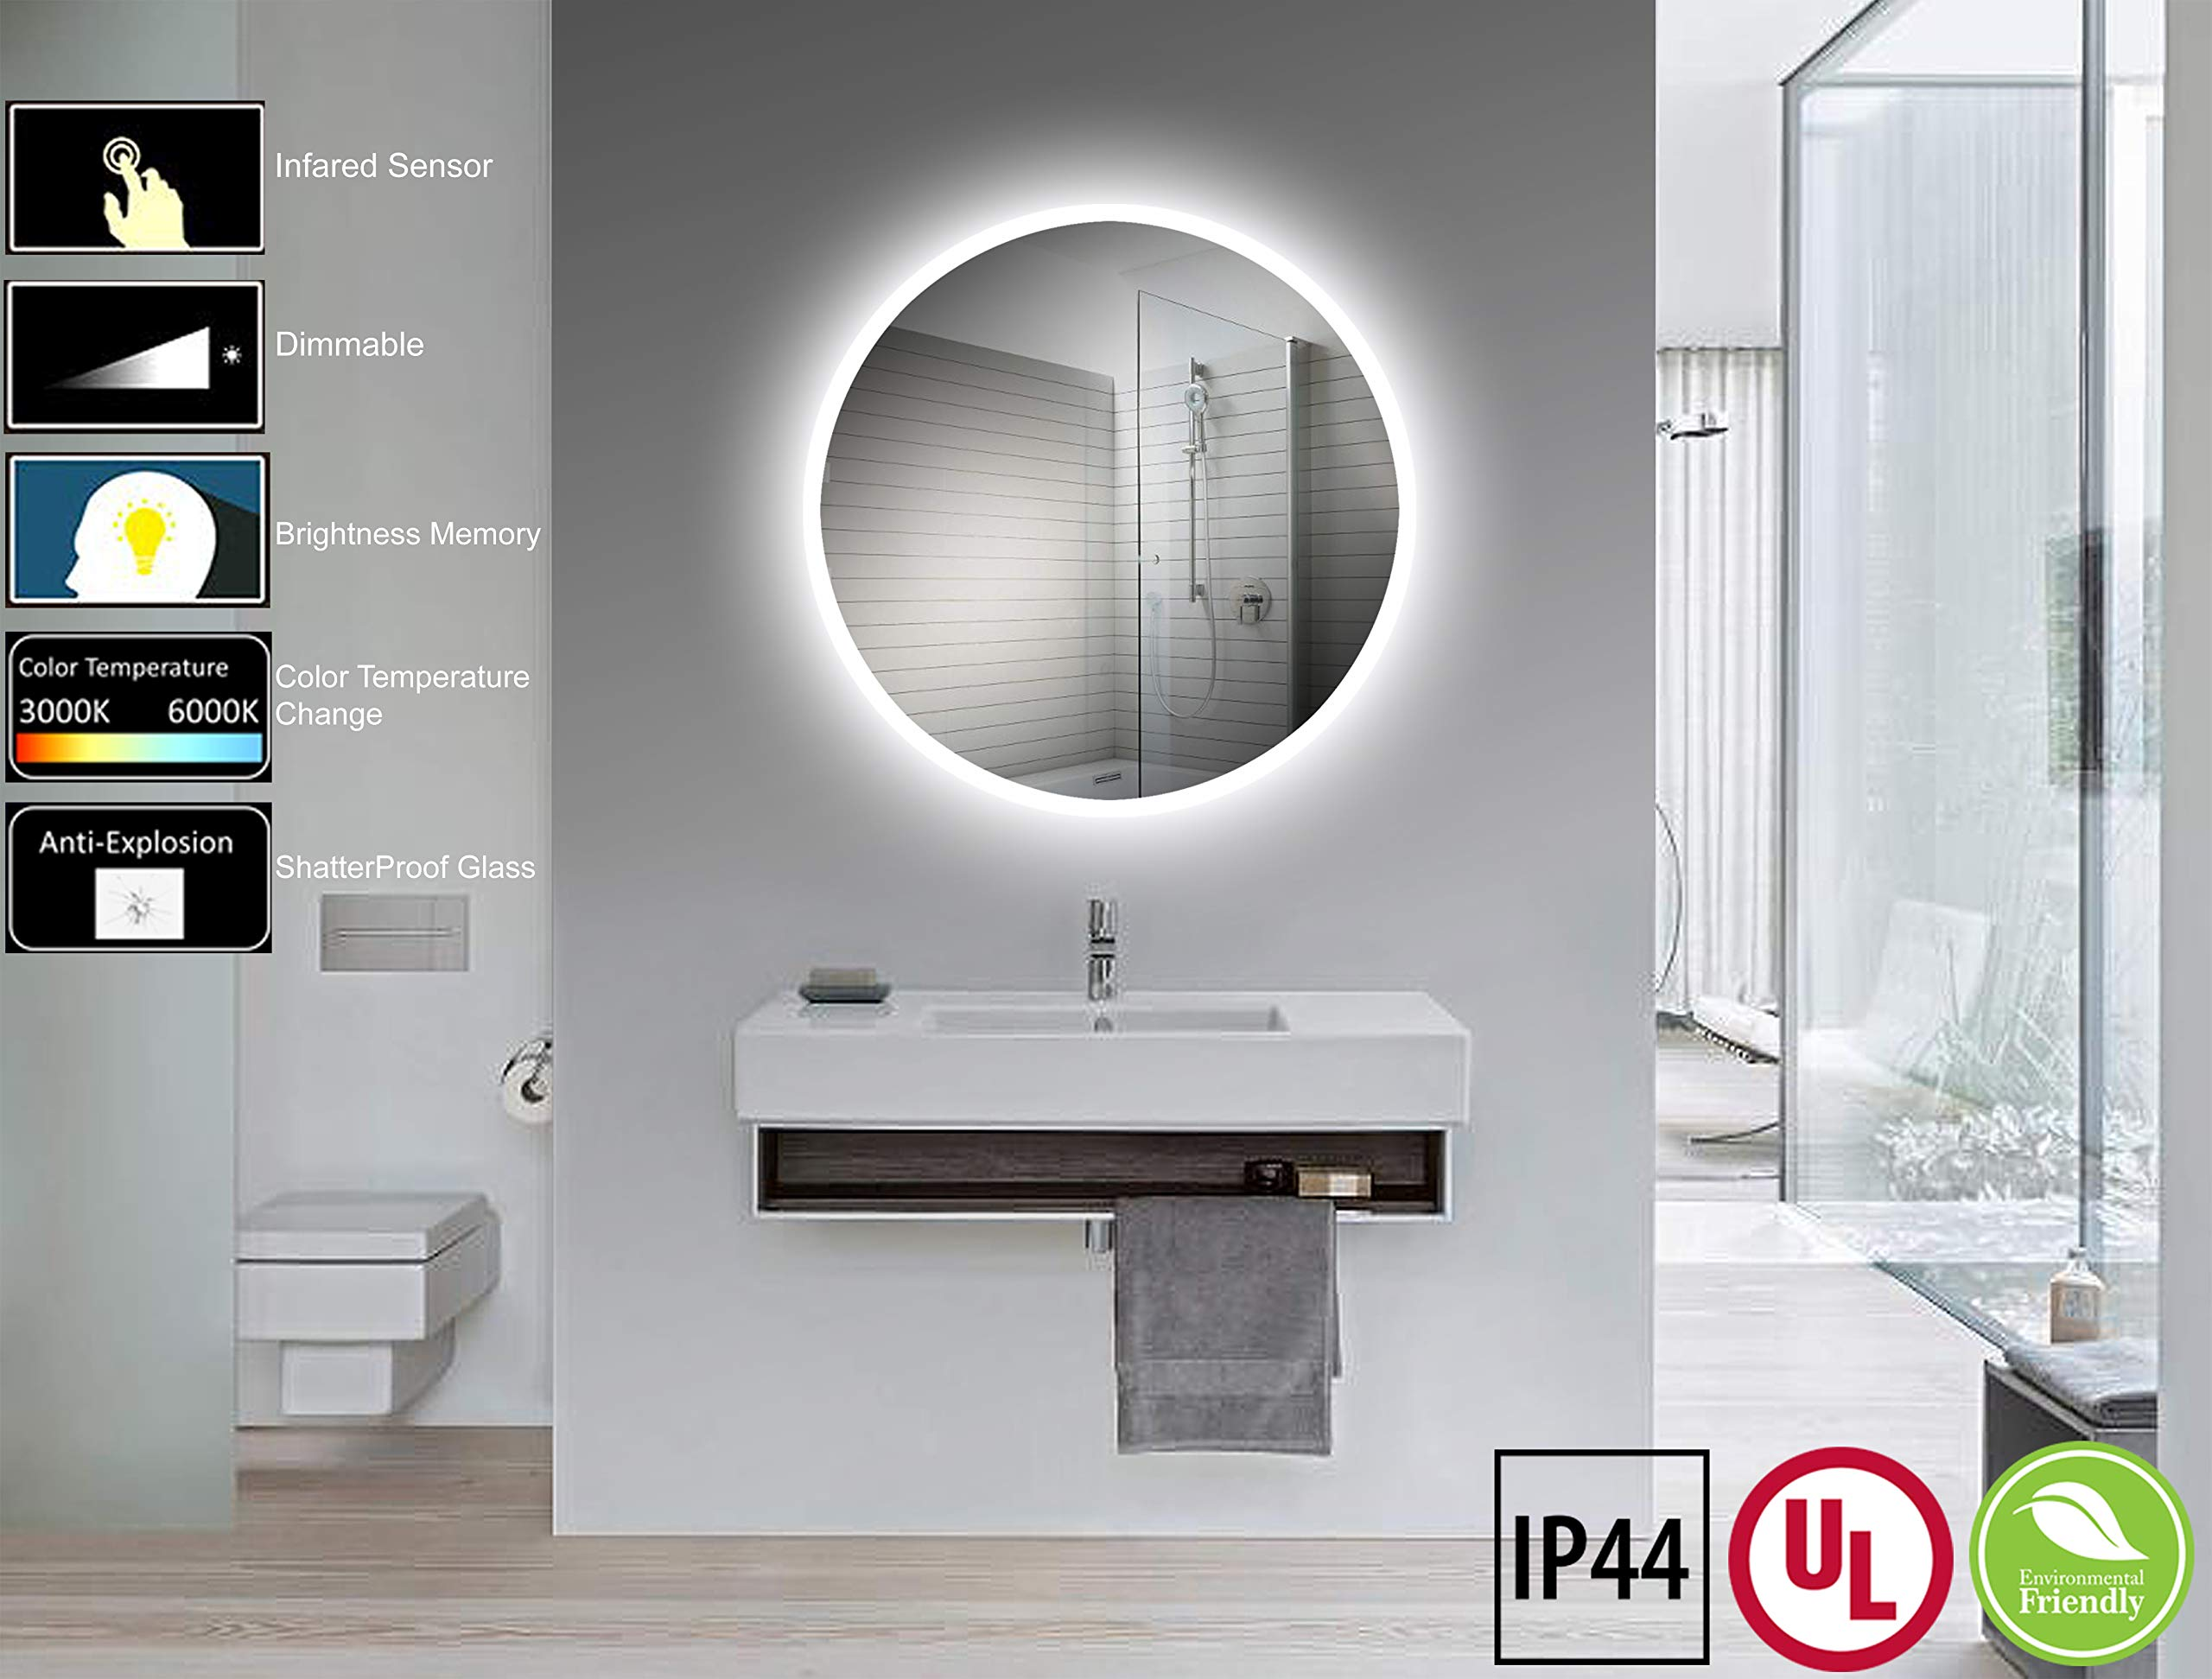 Yukon 32 Inch 32 Inch Round LED Wall Mounted Lighted Vanity Bathroom Silvered Mirror with CRI>90+ Dimmable LED, Dual Colored Warm White/Cool White, UL Tested, Waterproof Vertical & Horizontal Mirror